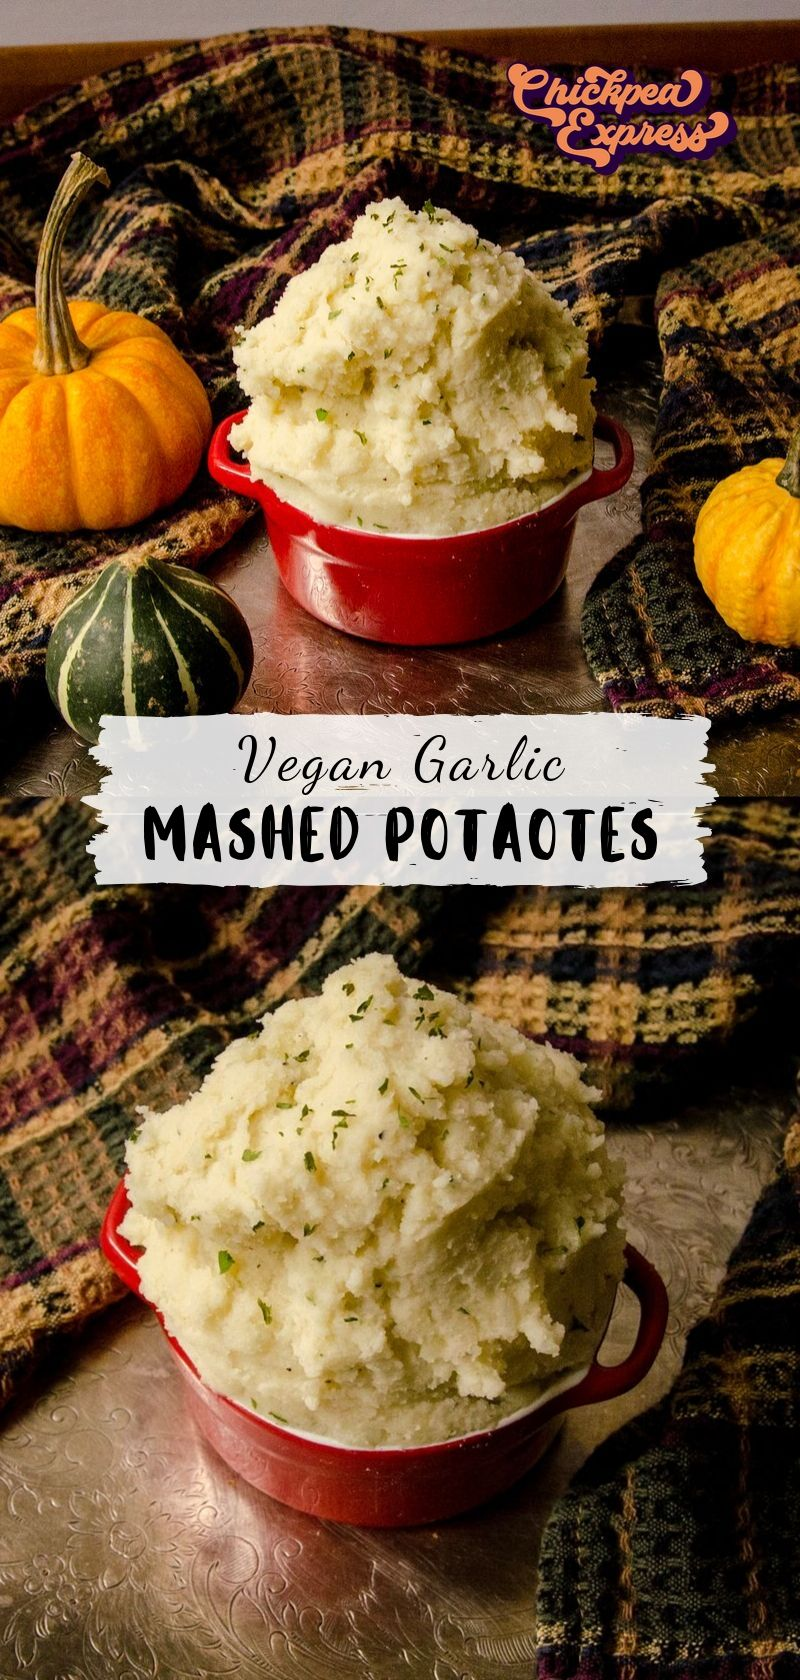 Vegan garlic mashed potatoes. Mashed potatoes recipe for thanksgiving dinner, and other holiday feasts! This vegan and healthy alternative is sure to be a hit! Top with warm brown gravy.  . . #vegan #veganfood #veganlife #veganrecipe #veganrecipes #recipe #recipes #healthyrecipes #healthy #healthyfood #potato #potatorecipe #mashedpotatoes #mashedpotato #veganmashedpotato #fallrecipes #fall #carbs #healthyvegan #thanksgiving #thanksgivingrecipe #thanksgivingfood #thanksgivingdinner